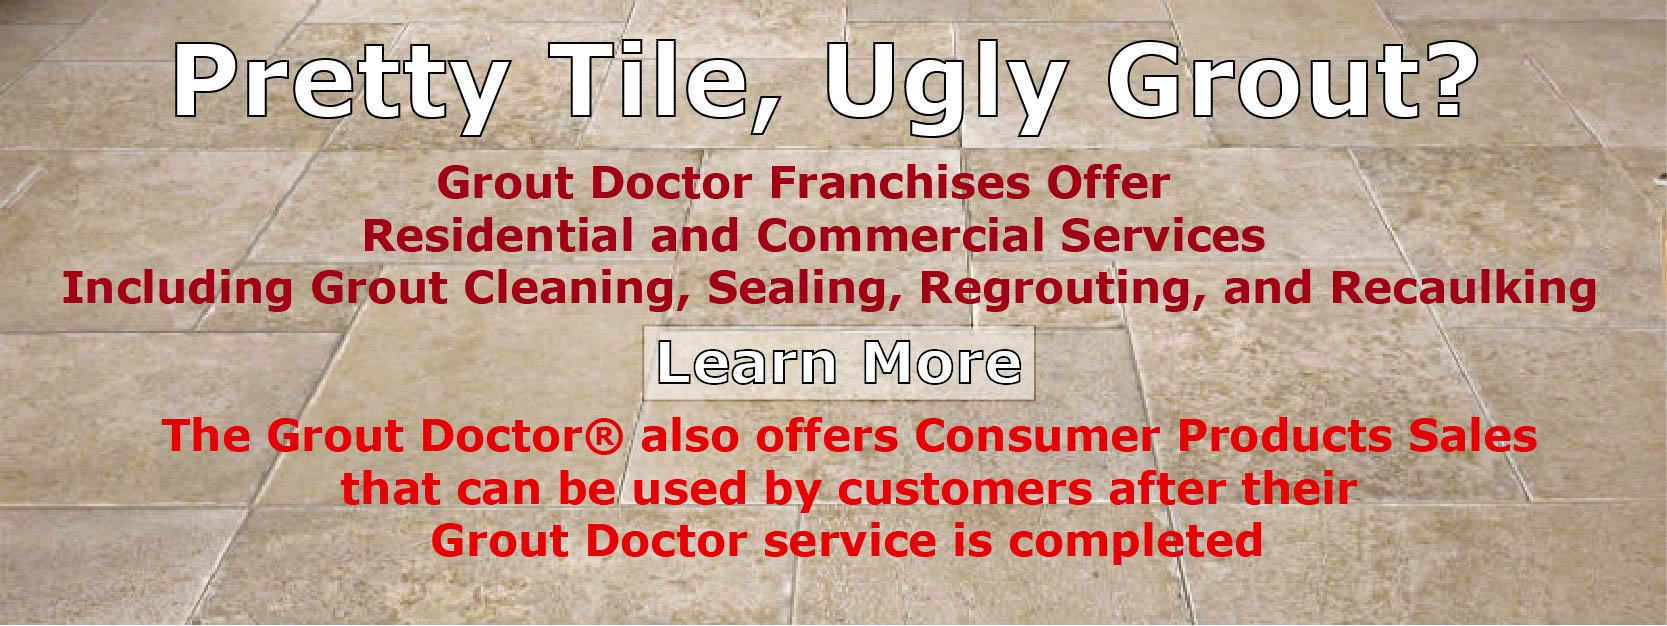 The grout doctor franchise opportunities slide 4 ppazfo